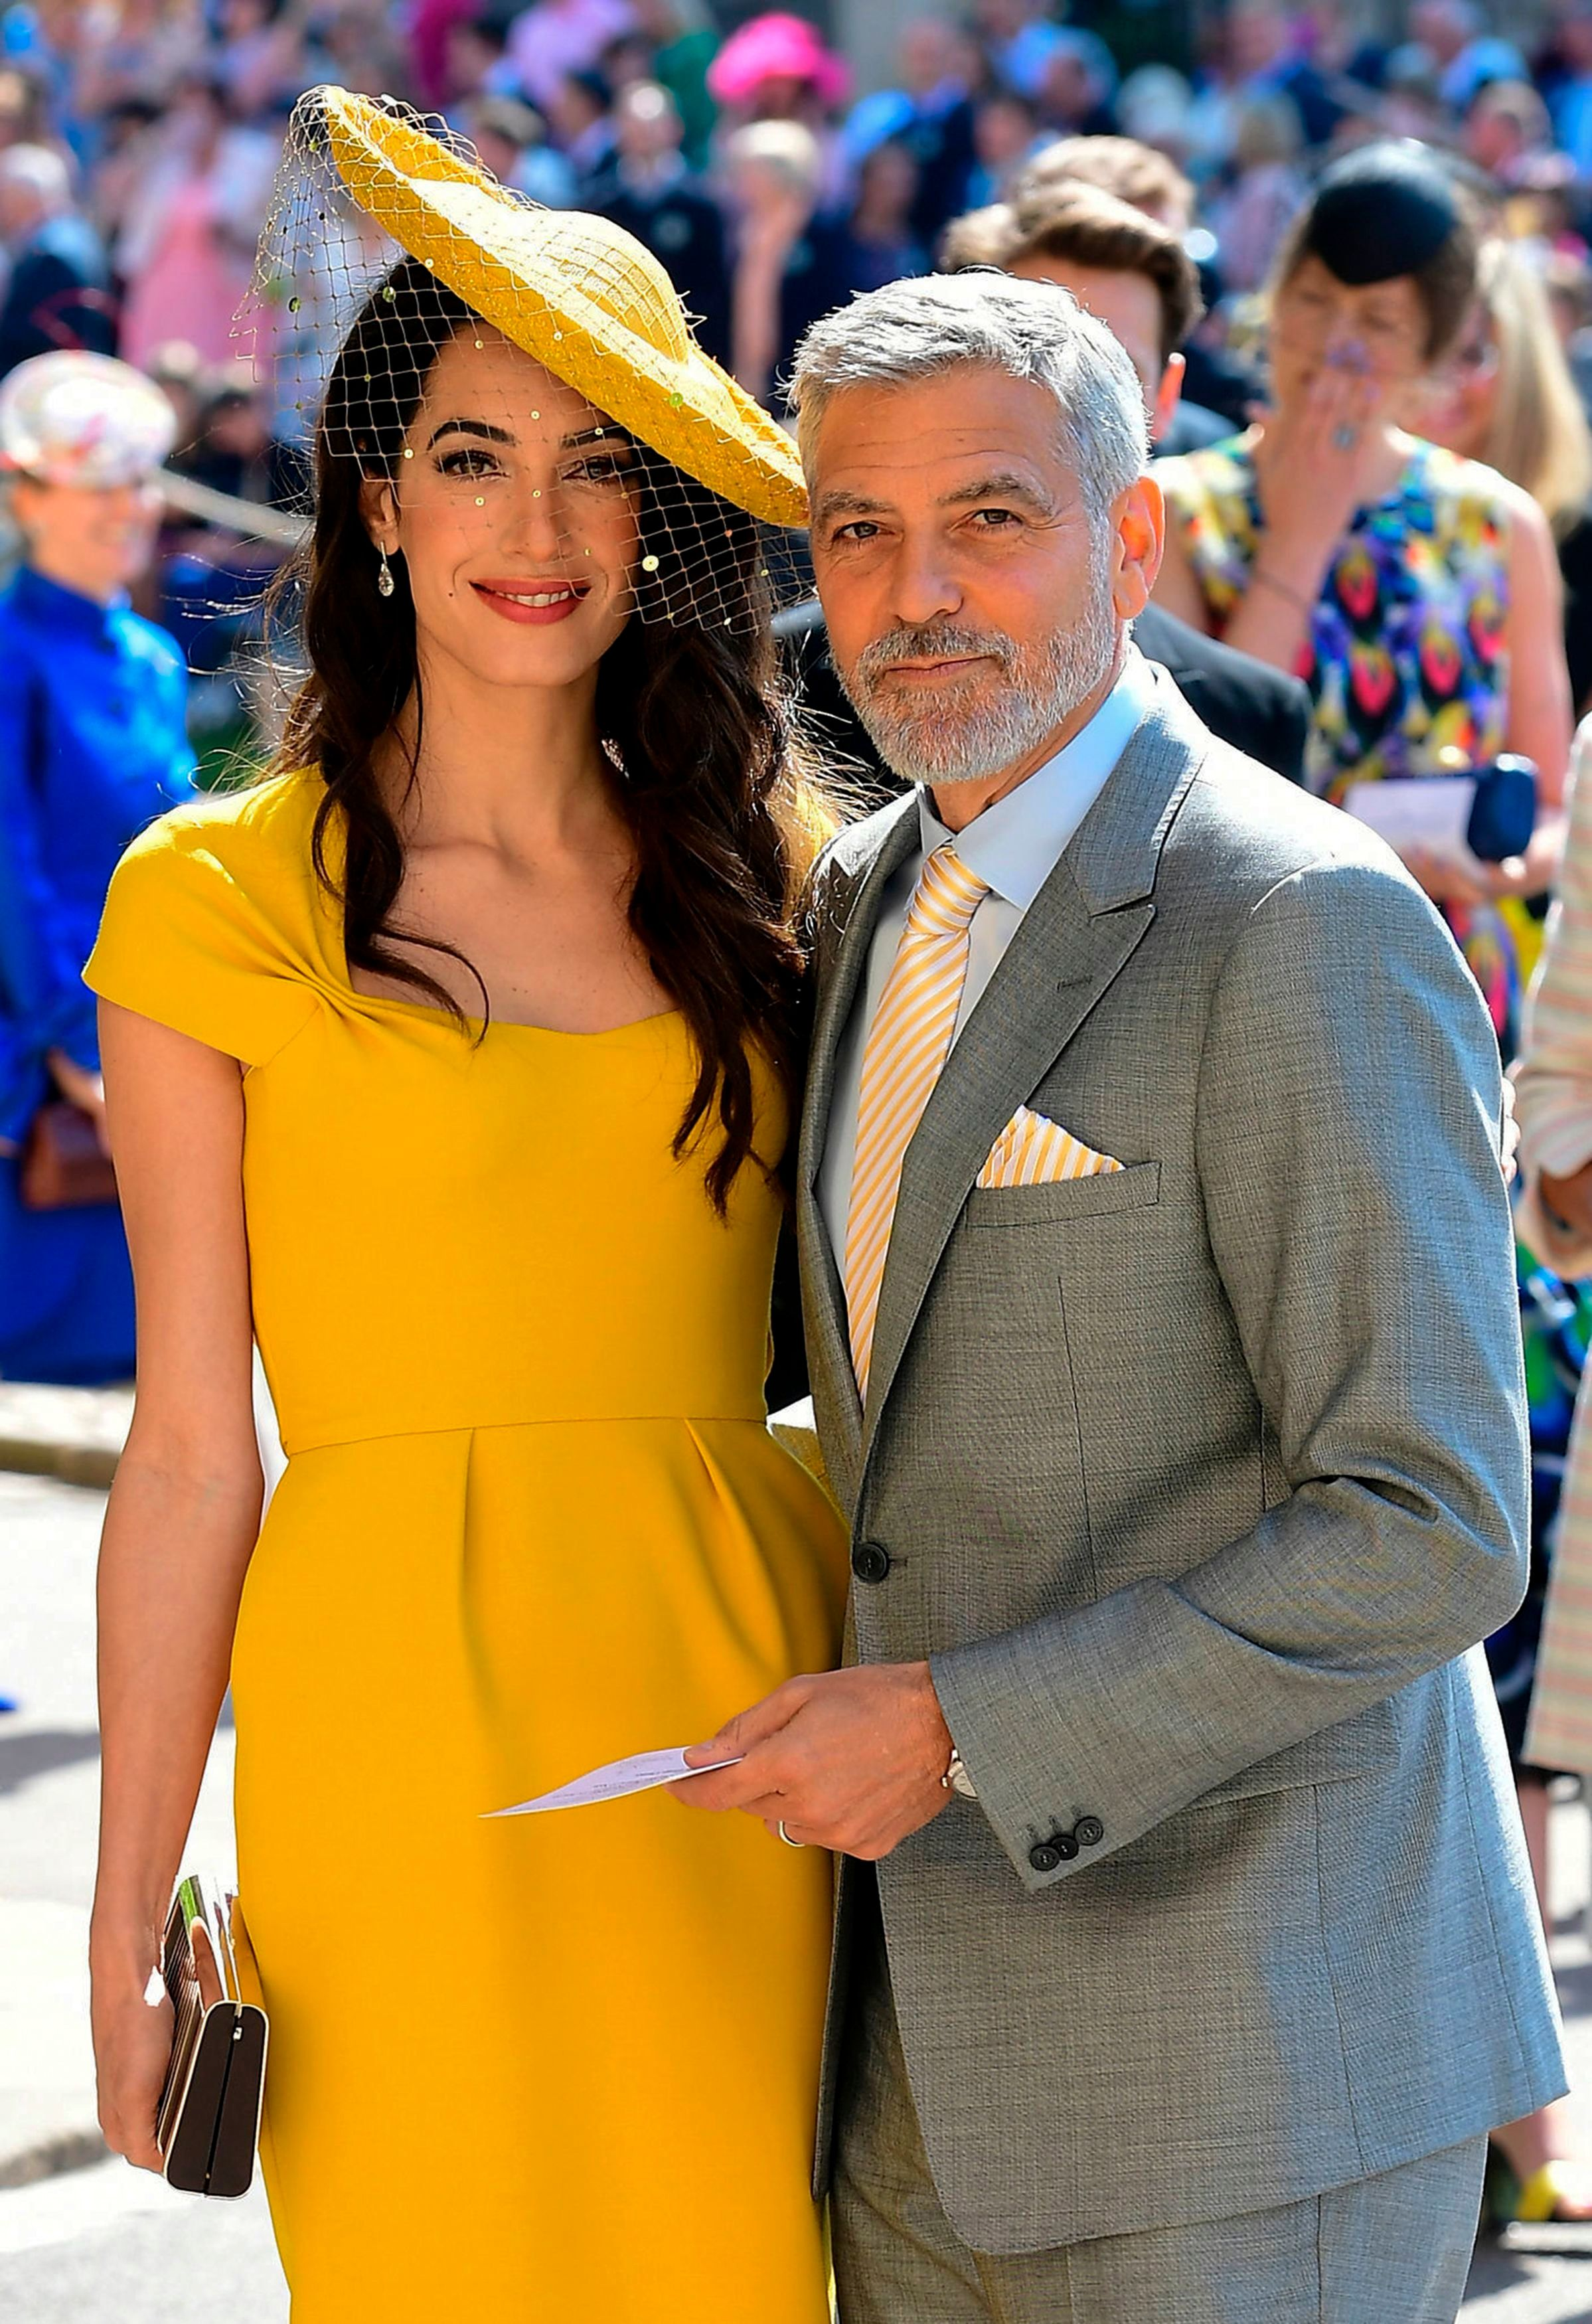 Amal and George Clooney pose together on the day of the royal wedding at St George's Chapel, Windsor Castle, in Windsor, on M